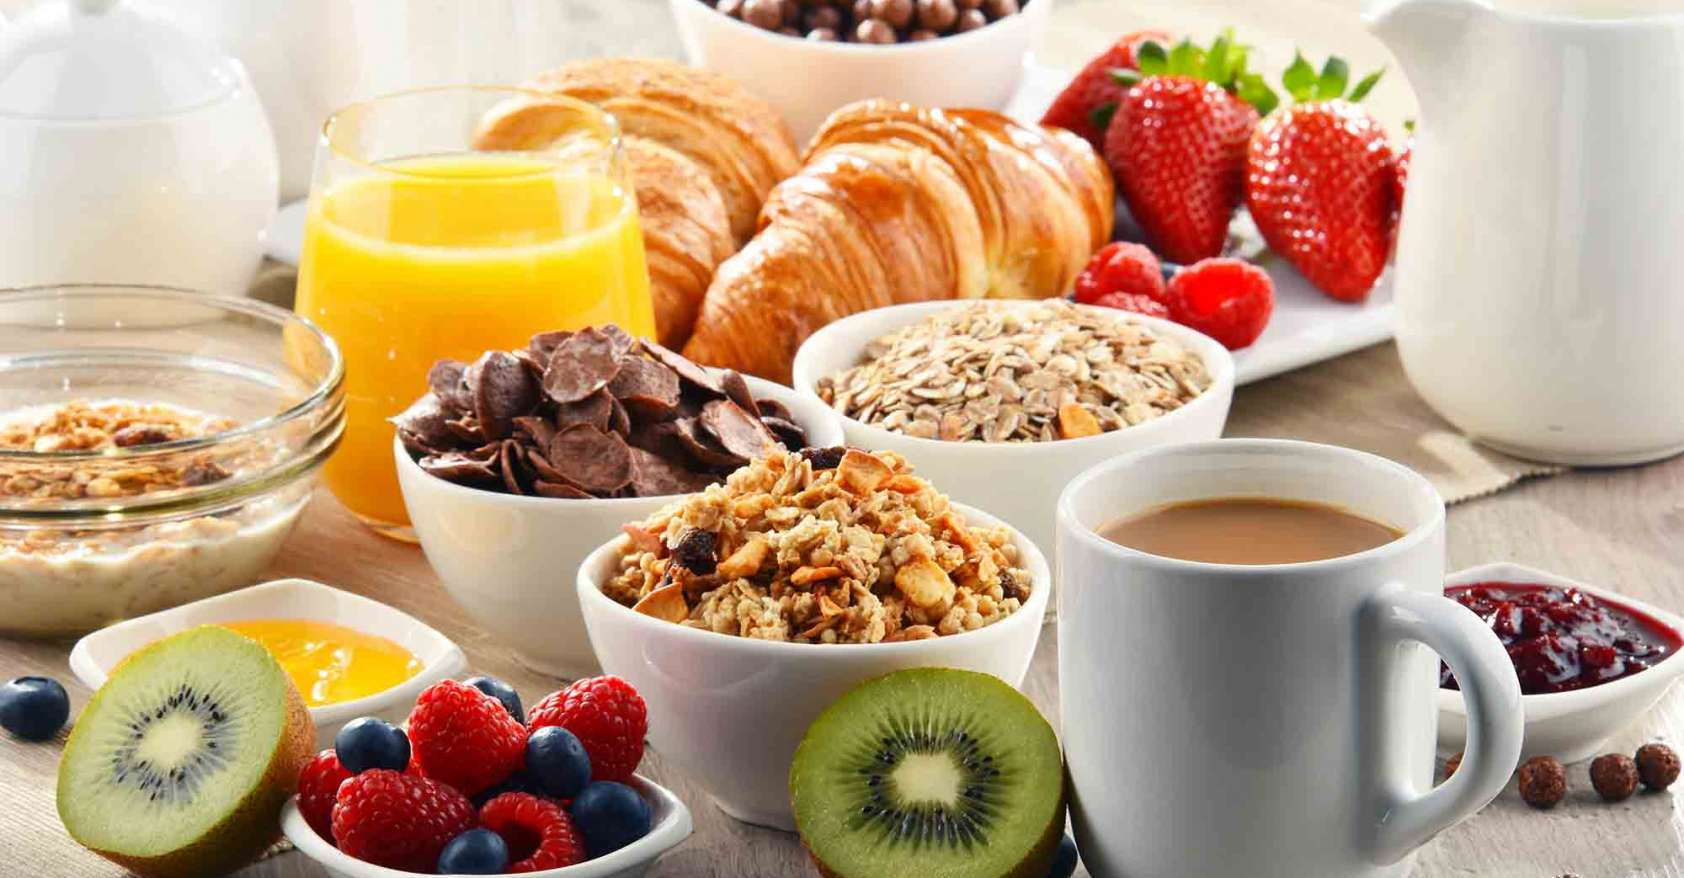 healthy breakfast fruit, coffee, croissant, oatmeal, heart-healthy